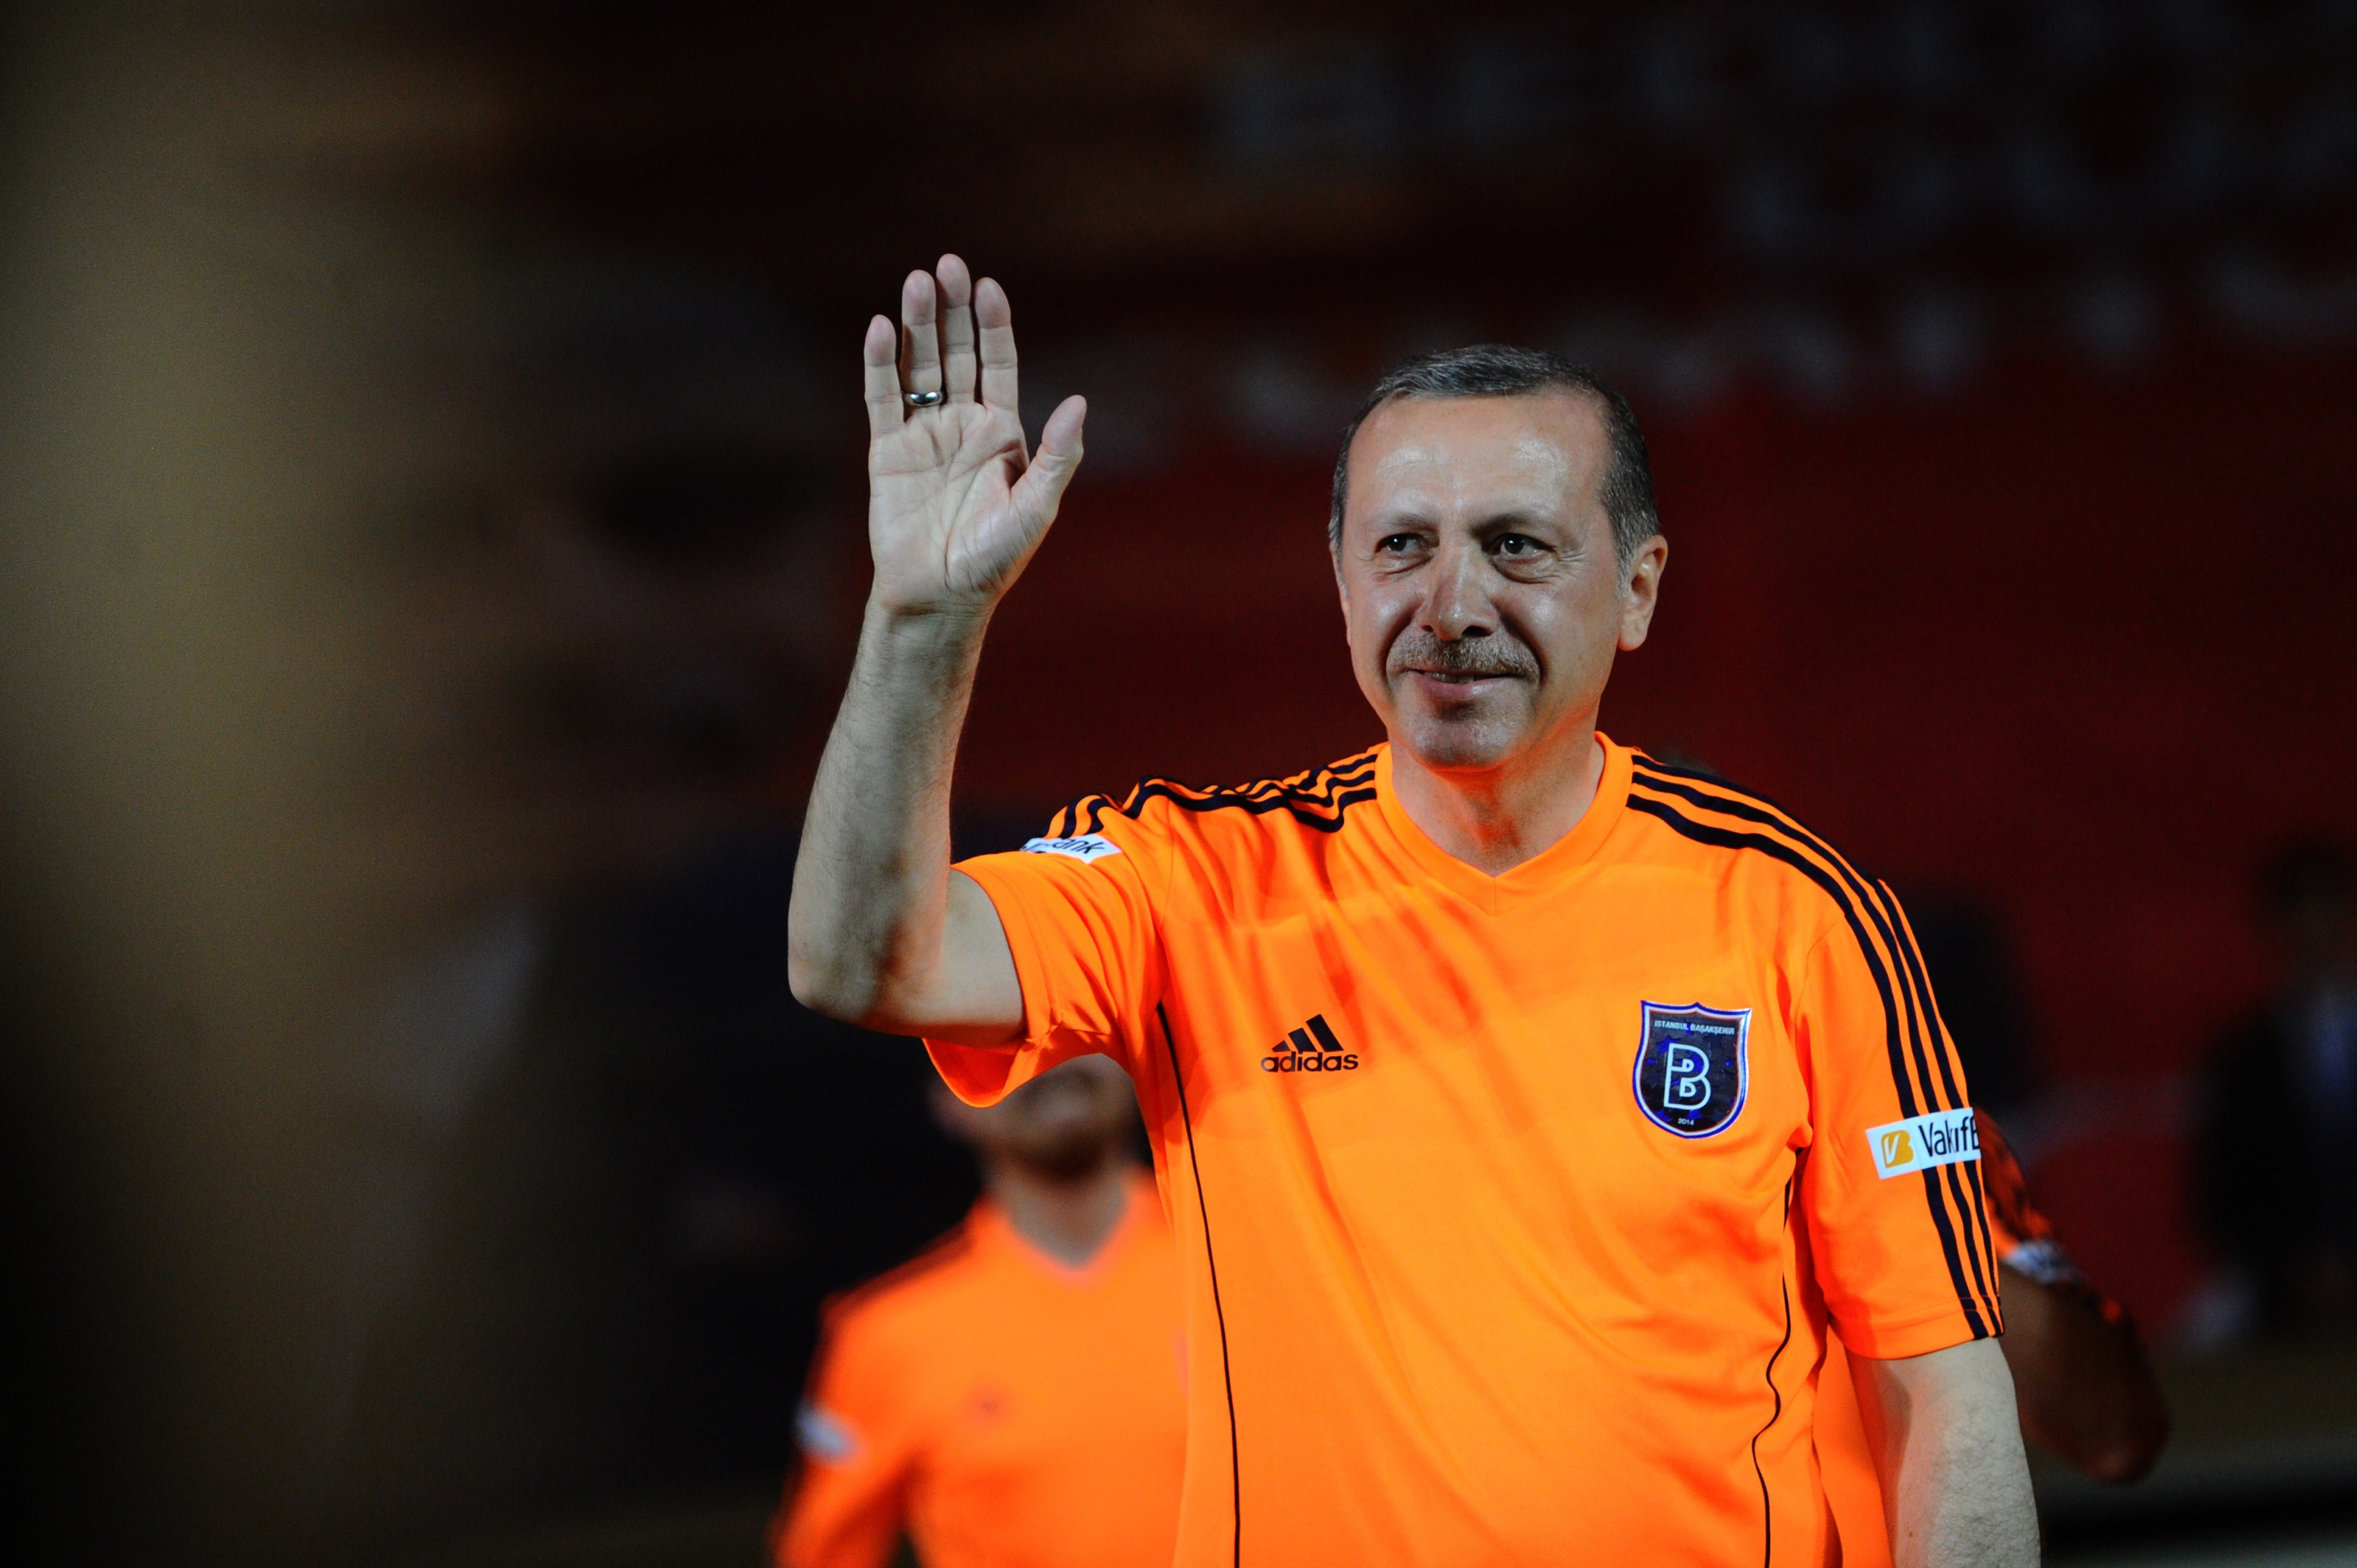 Turkish Prime Minister Recep Tayyip Erdogan waves to supporters during an exhibition match at the Basaksehir stadium on 26 July, 2014 in Istanbul. AFP